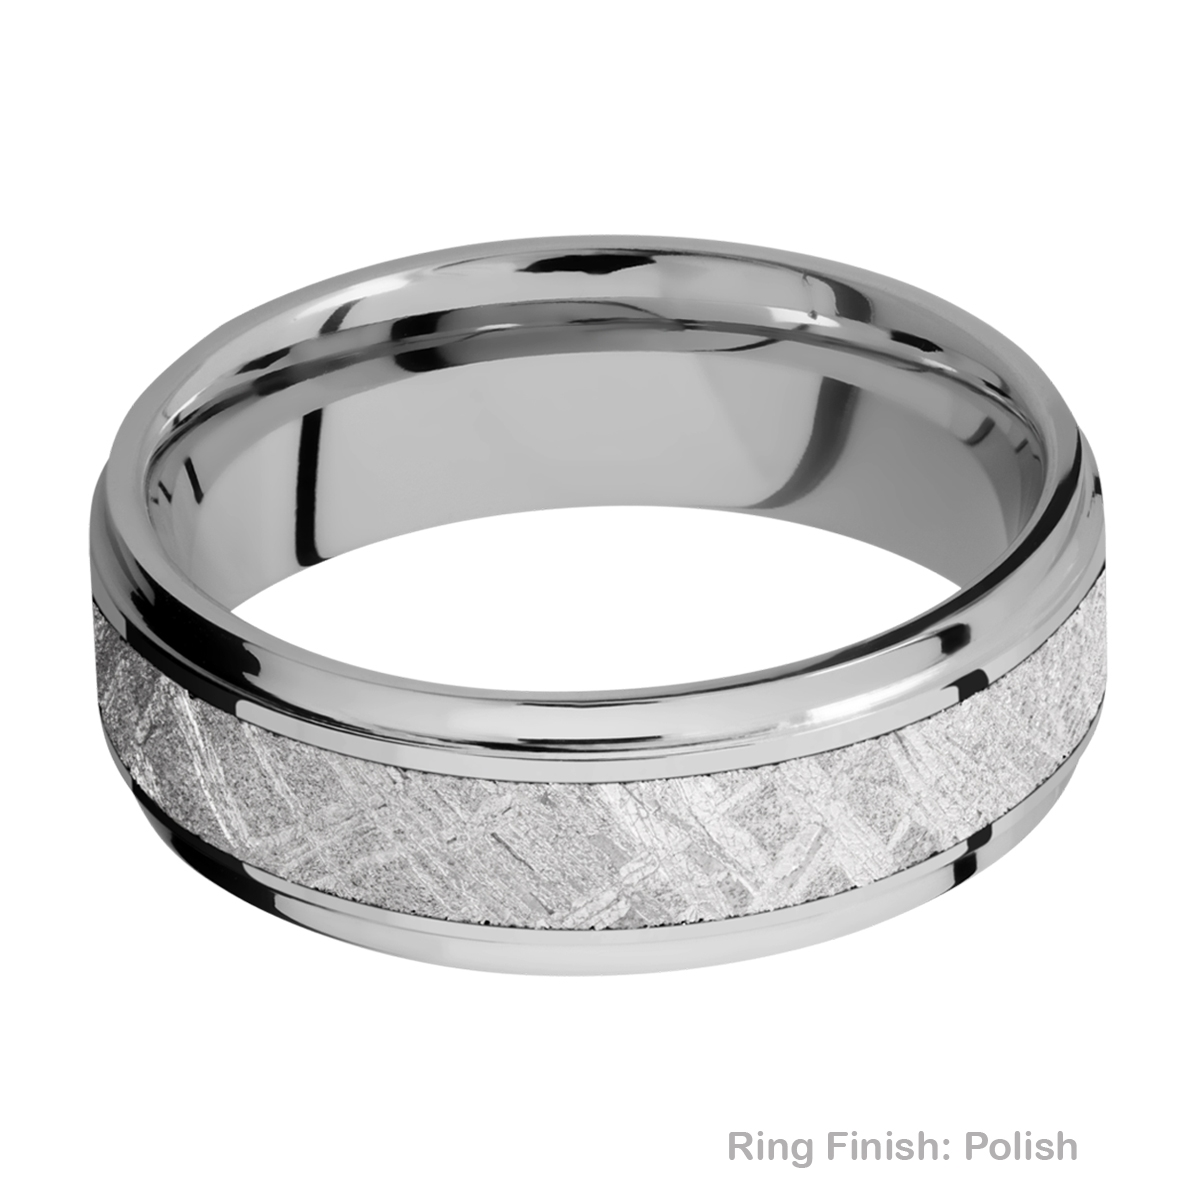 Lashbrook 7FGE14/METEORITE Titanium Wedding Ring or Band Alternative View 3